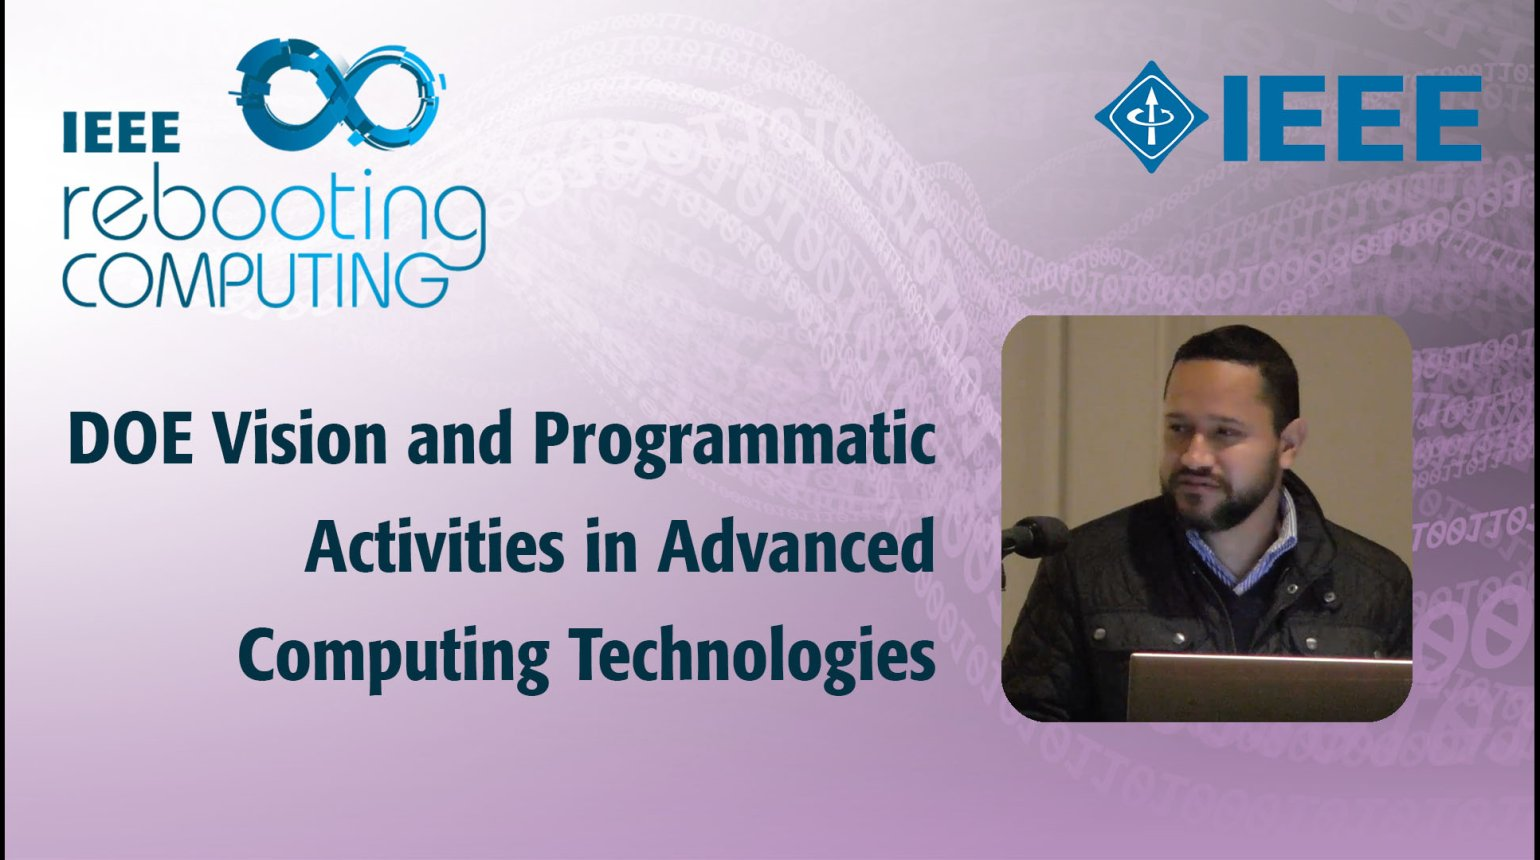 DOE Vision and Programmatic Activities in Advanced Computing Technologies: IEEE Rebooting Computing 2017